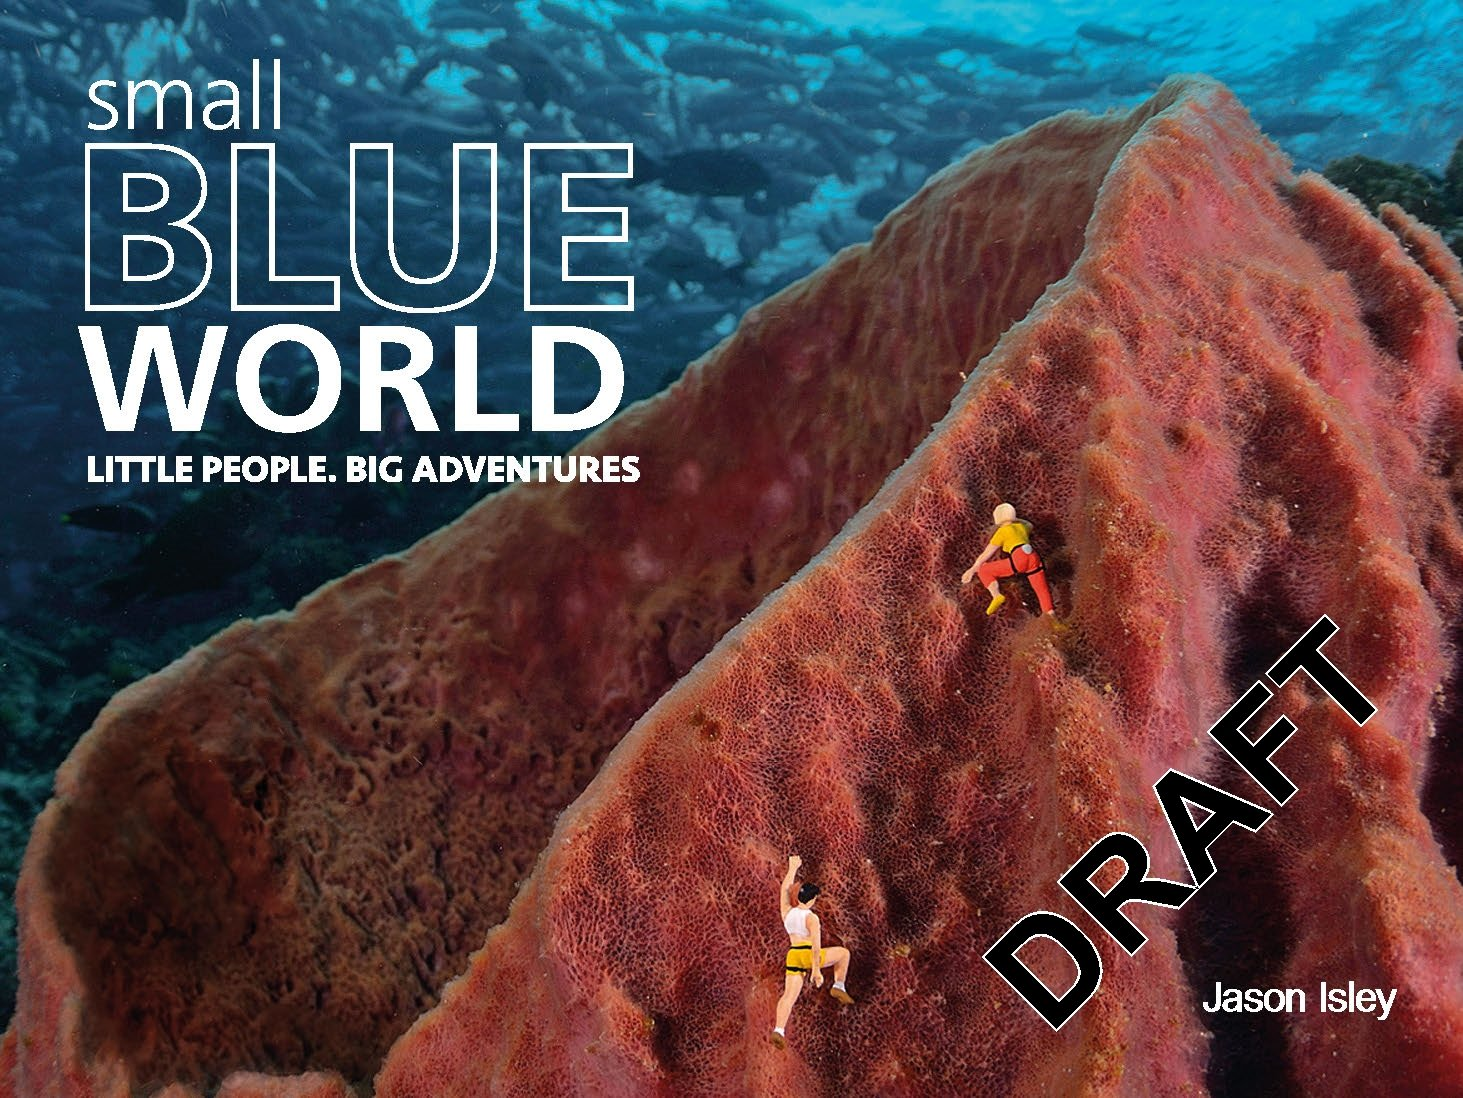 Small Blue World: Little People. Big Adventures